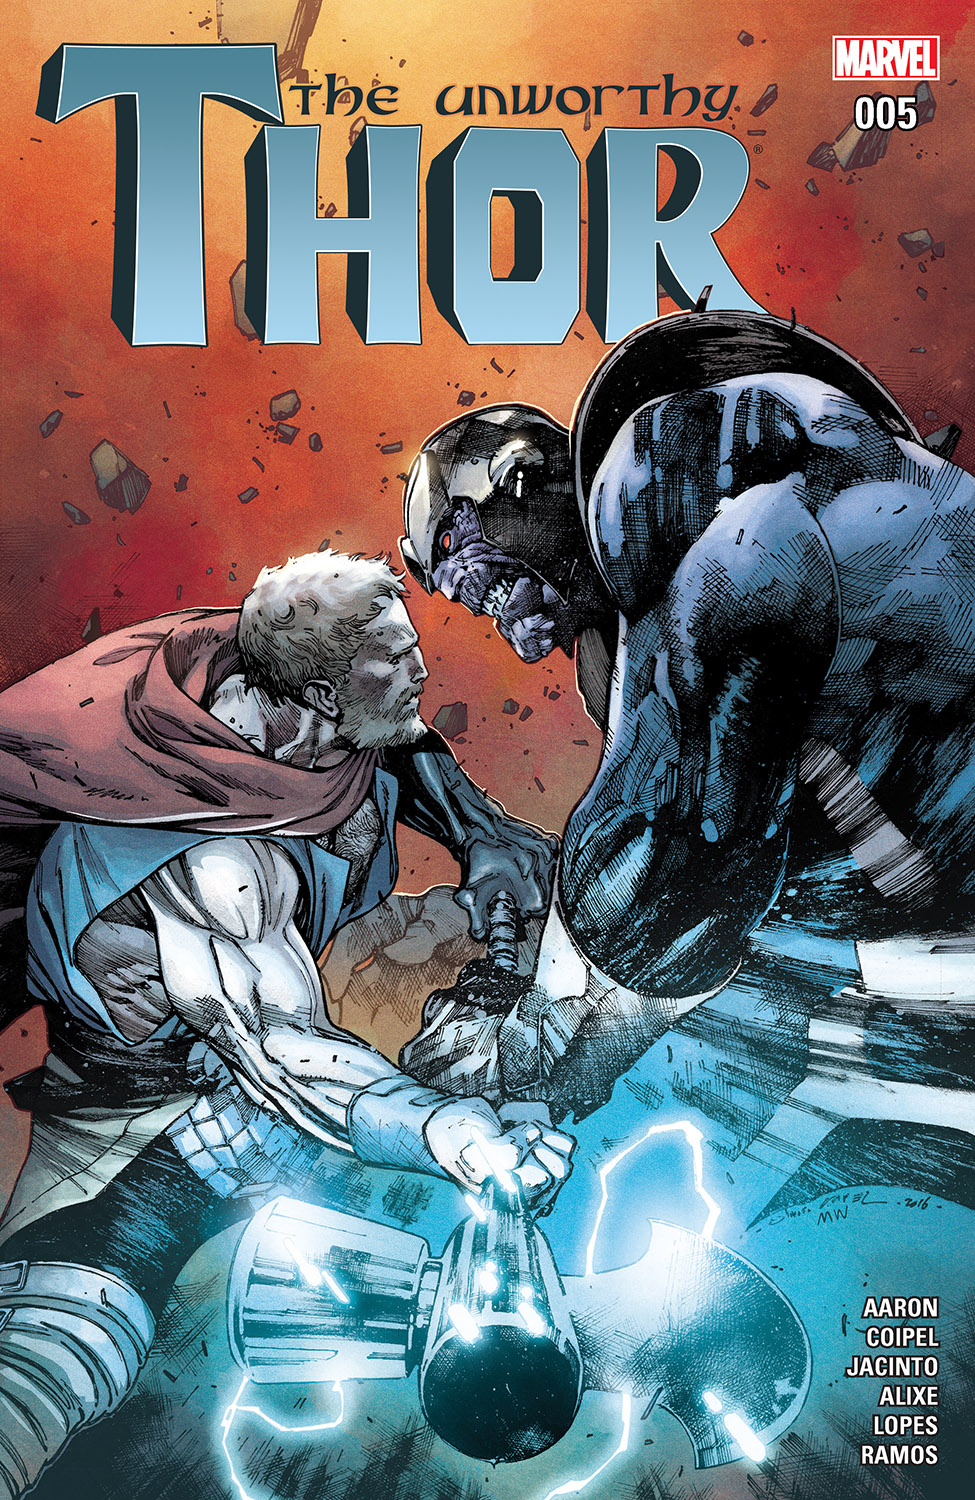 The Unworthy Thor (2016) #5